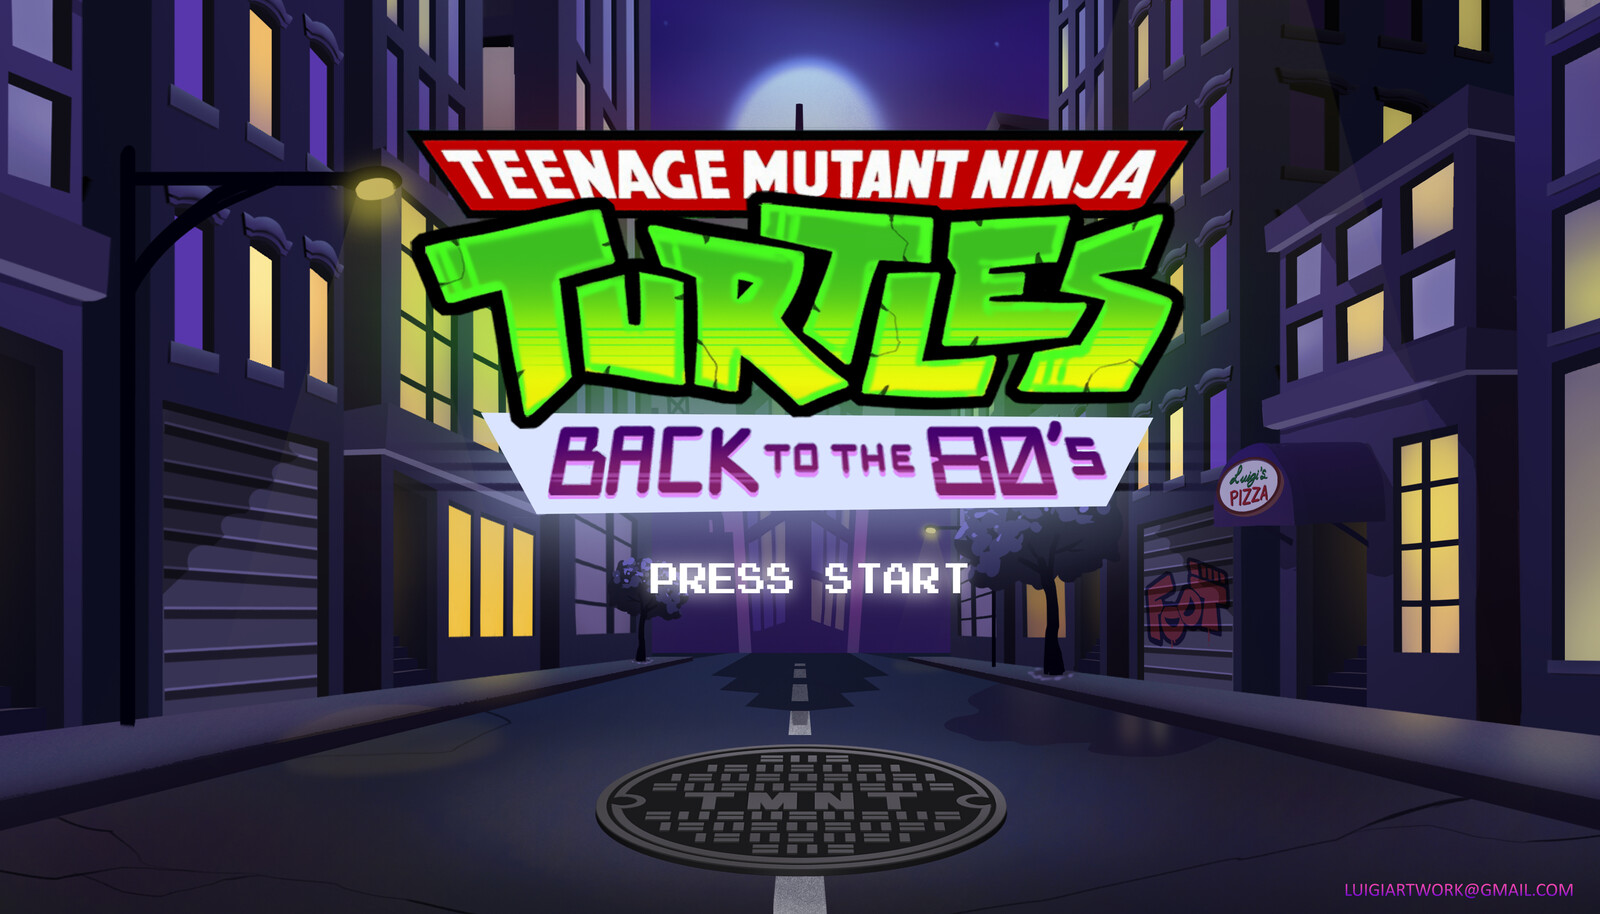 TMNT: Back to the 80's